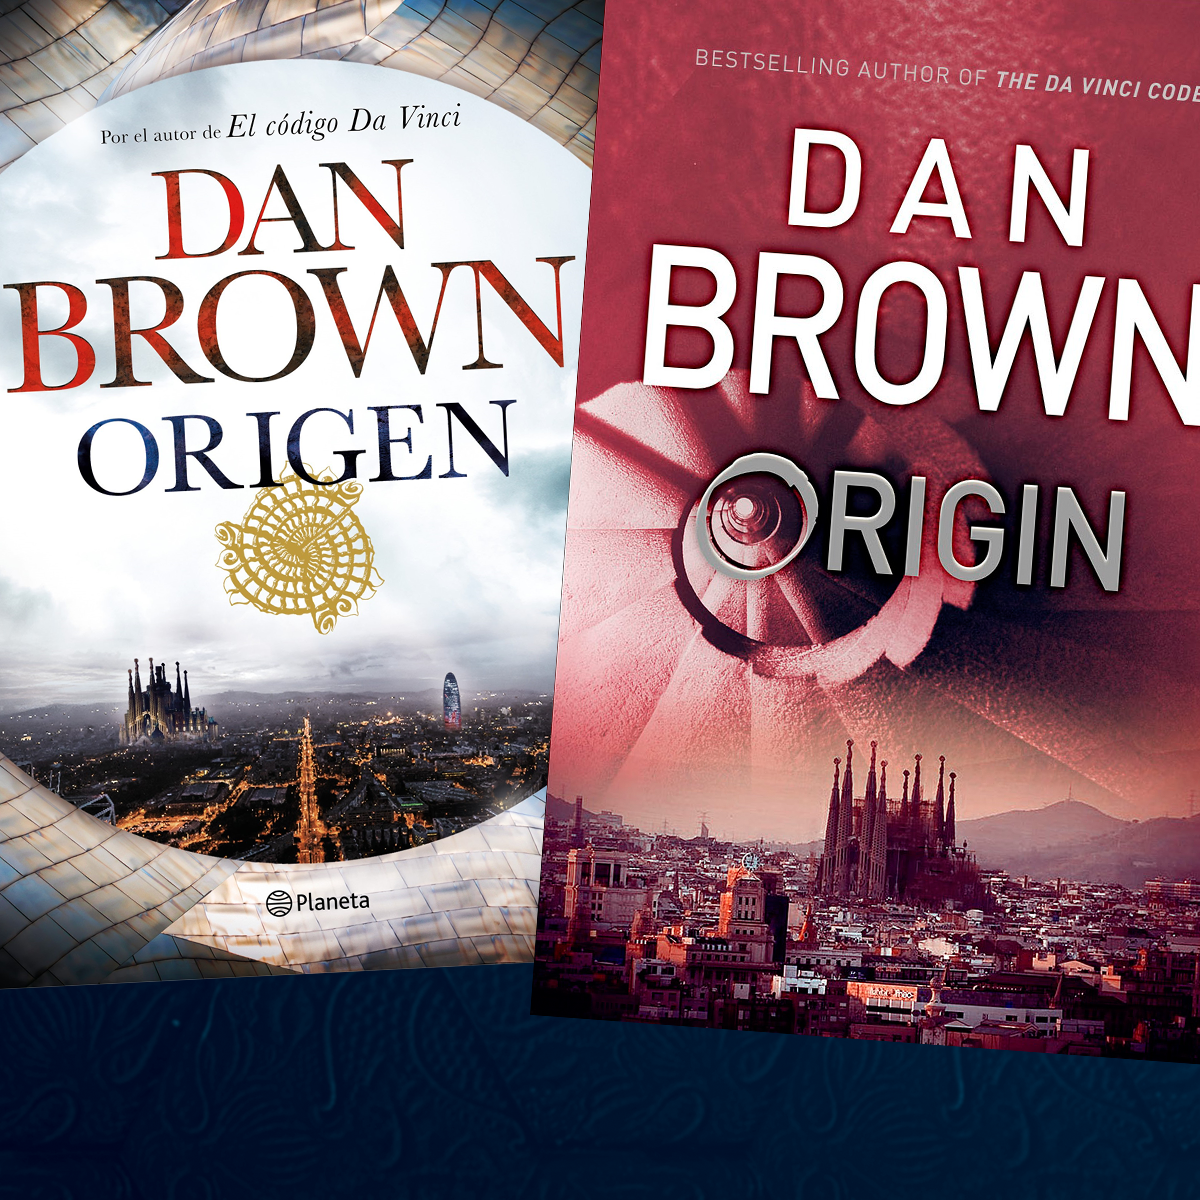 Book Cover Returns To Its Origins In >> Origin Dan Brown